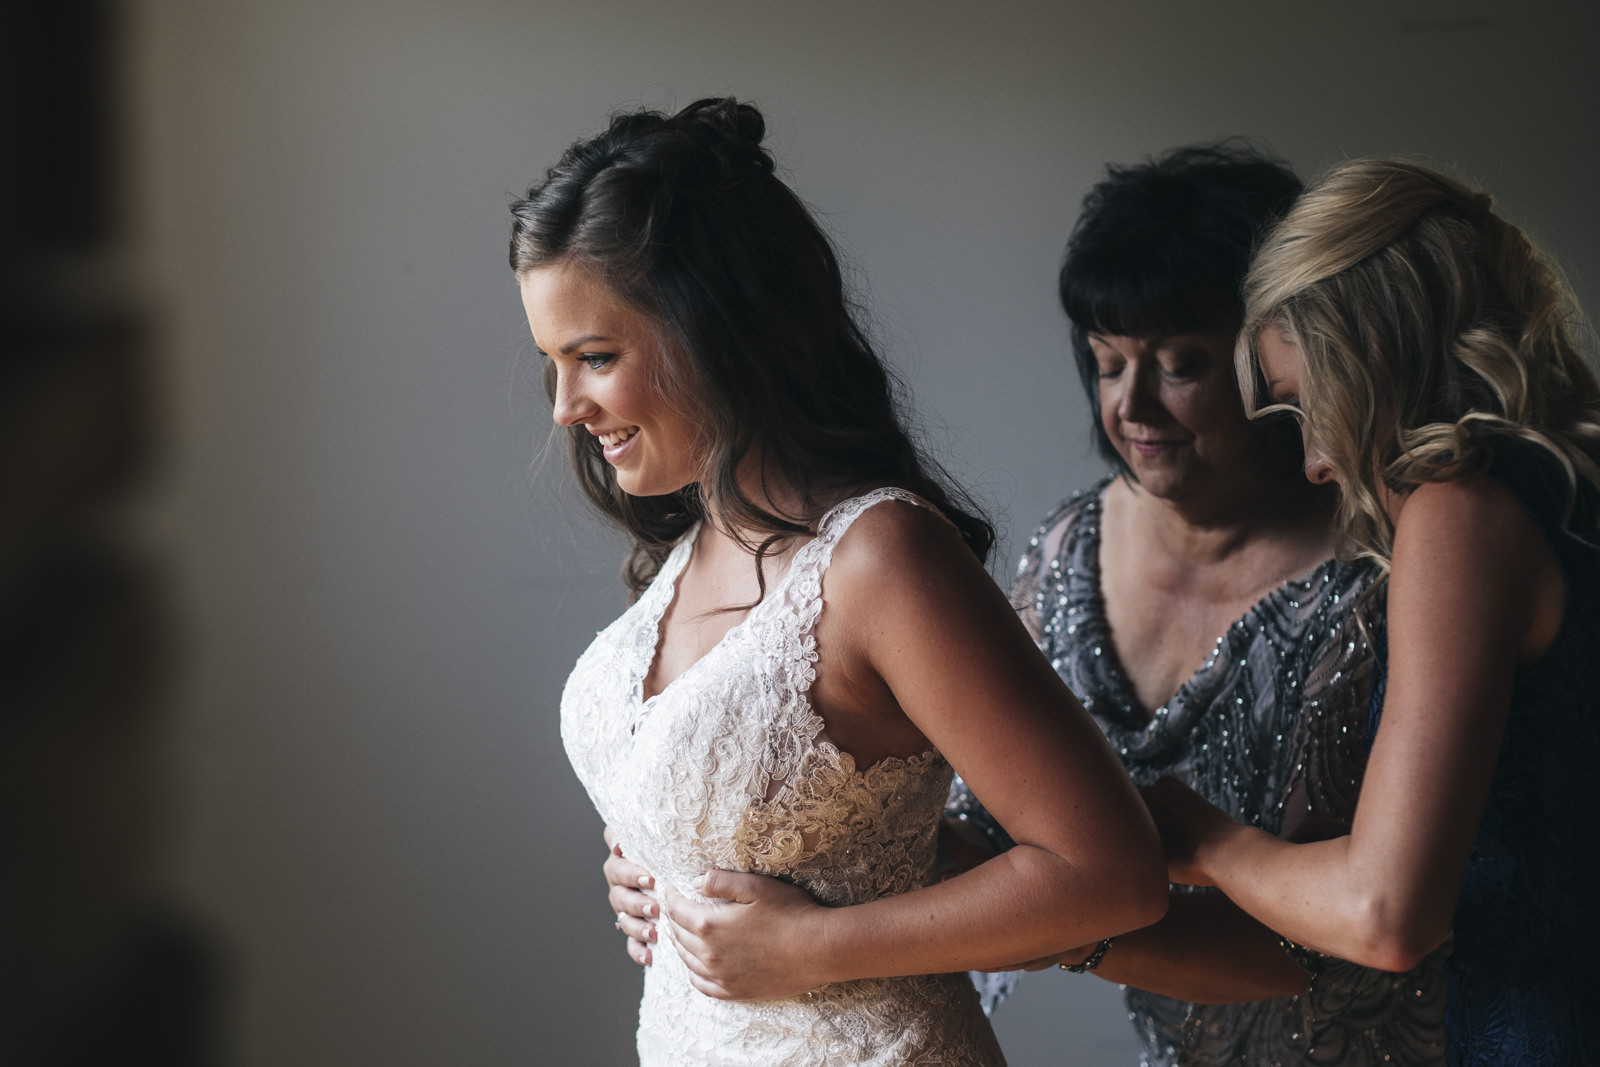 Bride steps into her dress on her wedding day in Pure Michigan.